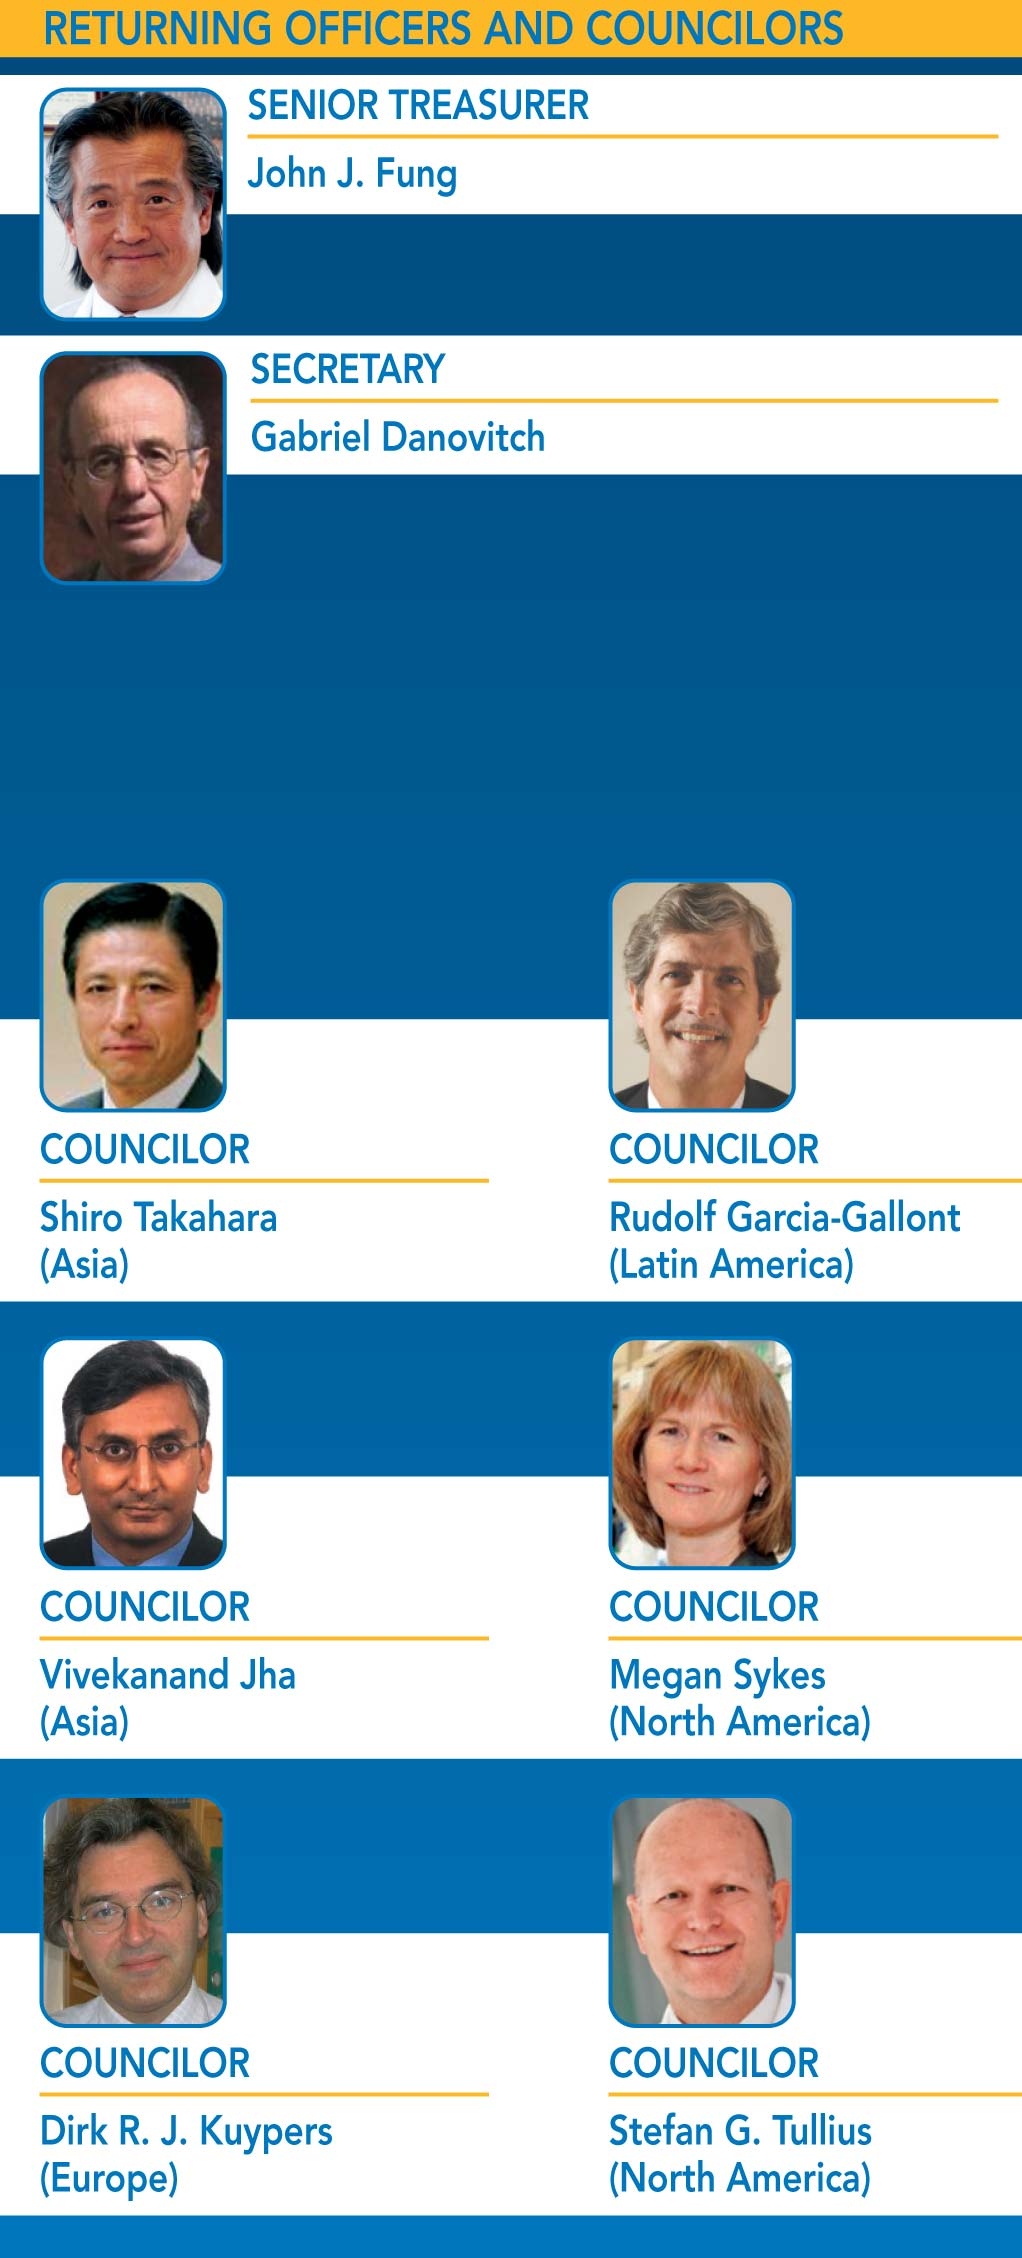 NEW COUNCIL POSITIONS FOR 2014–2016